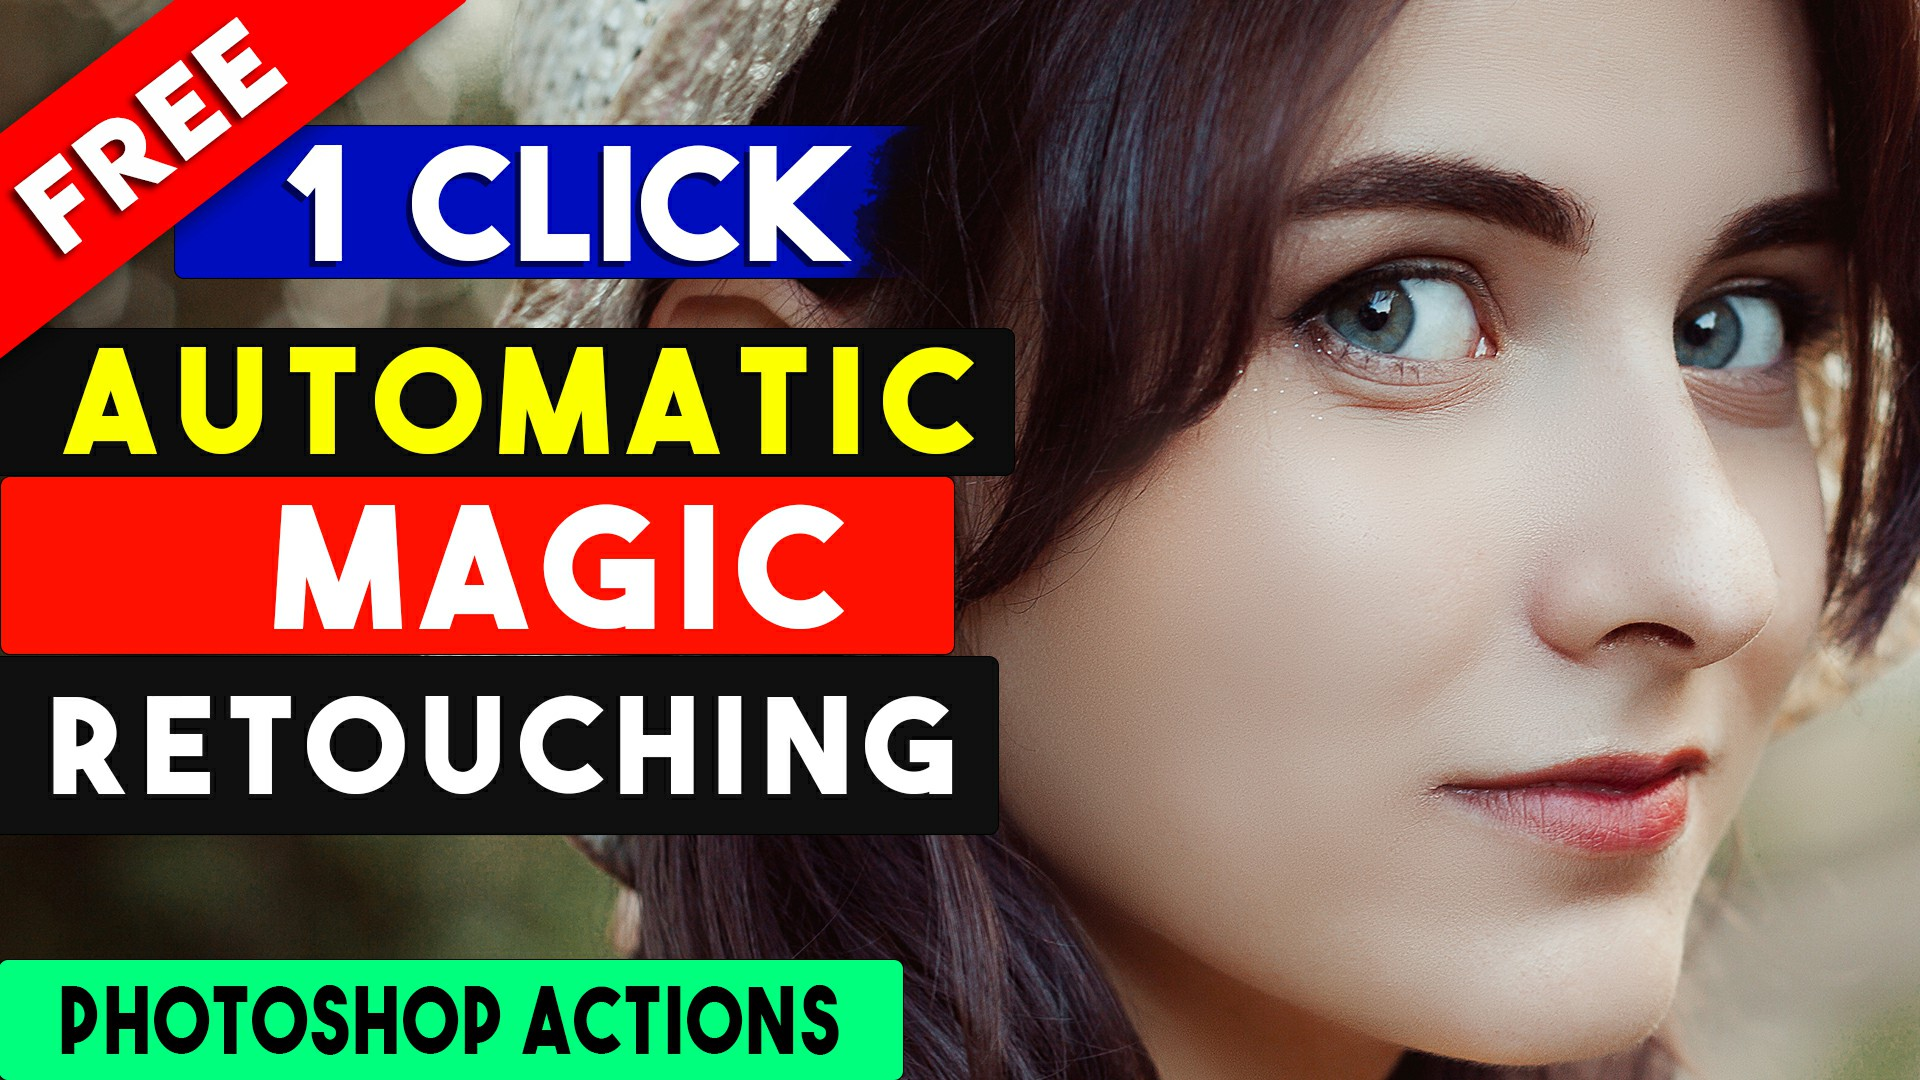 Automatic Magic retouch